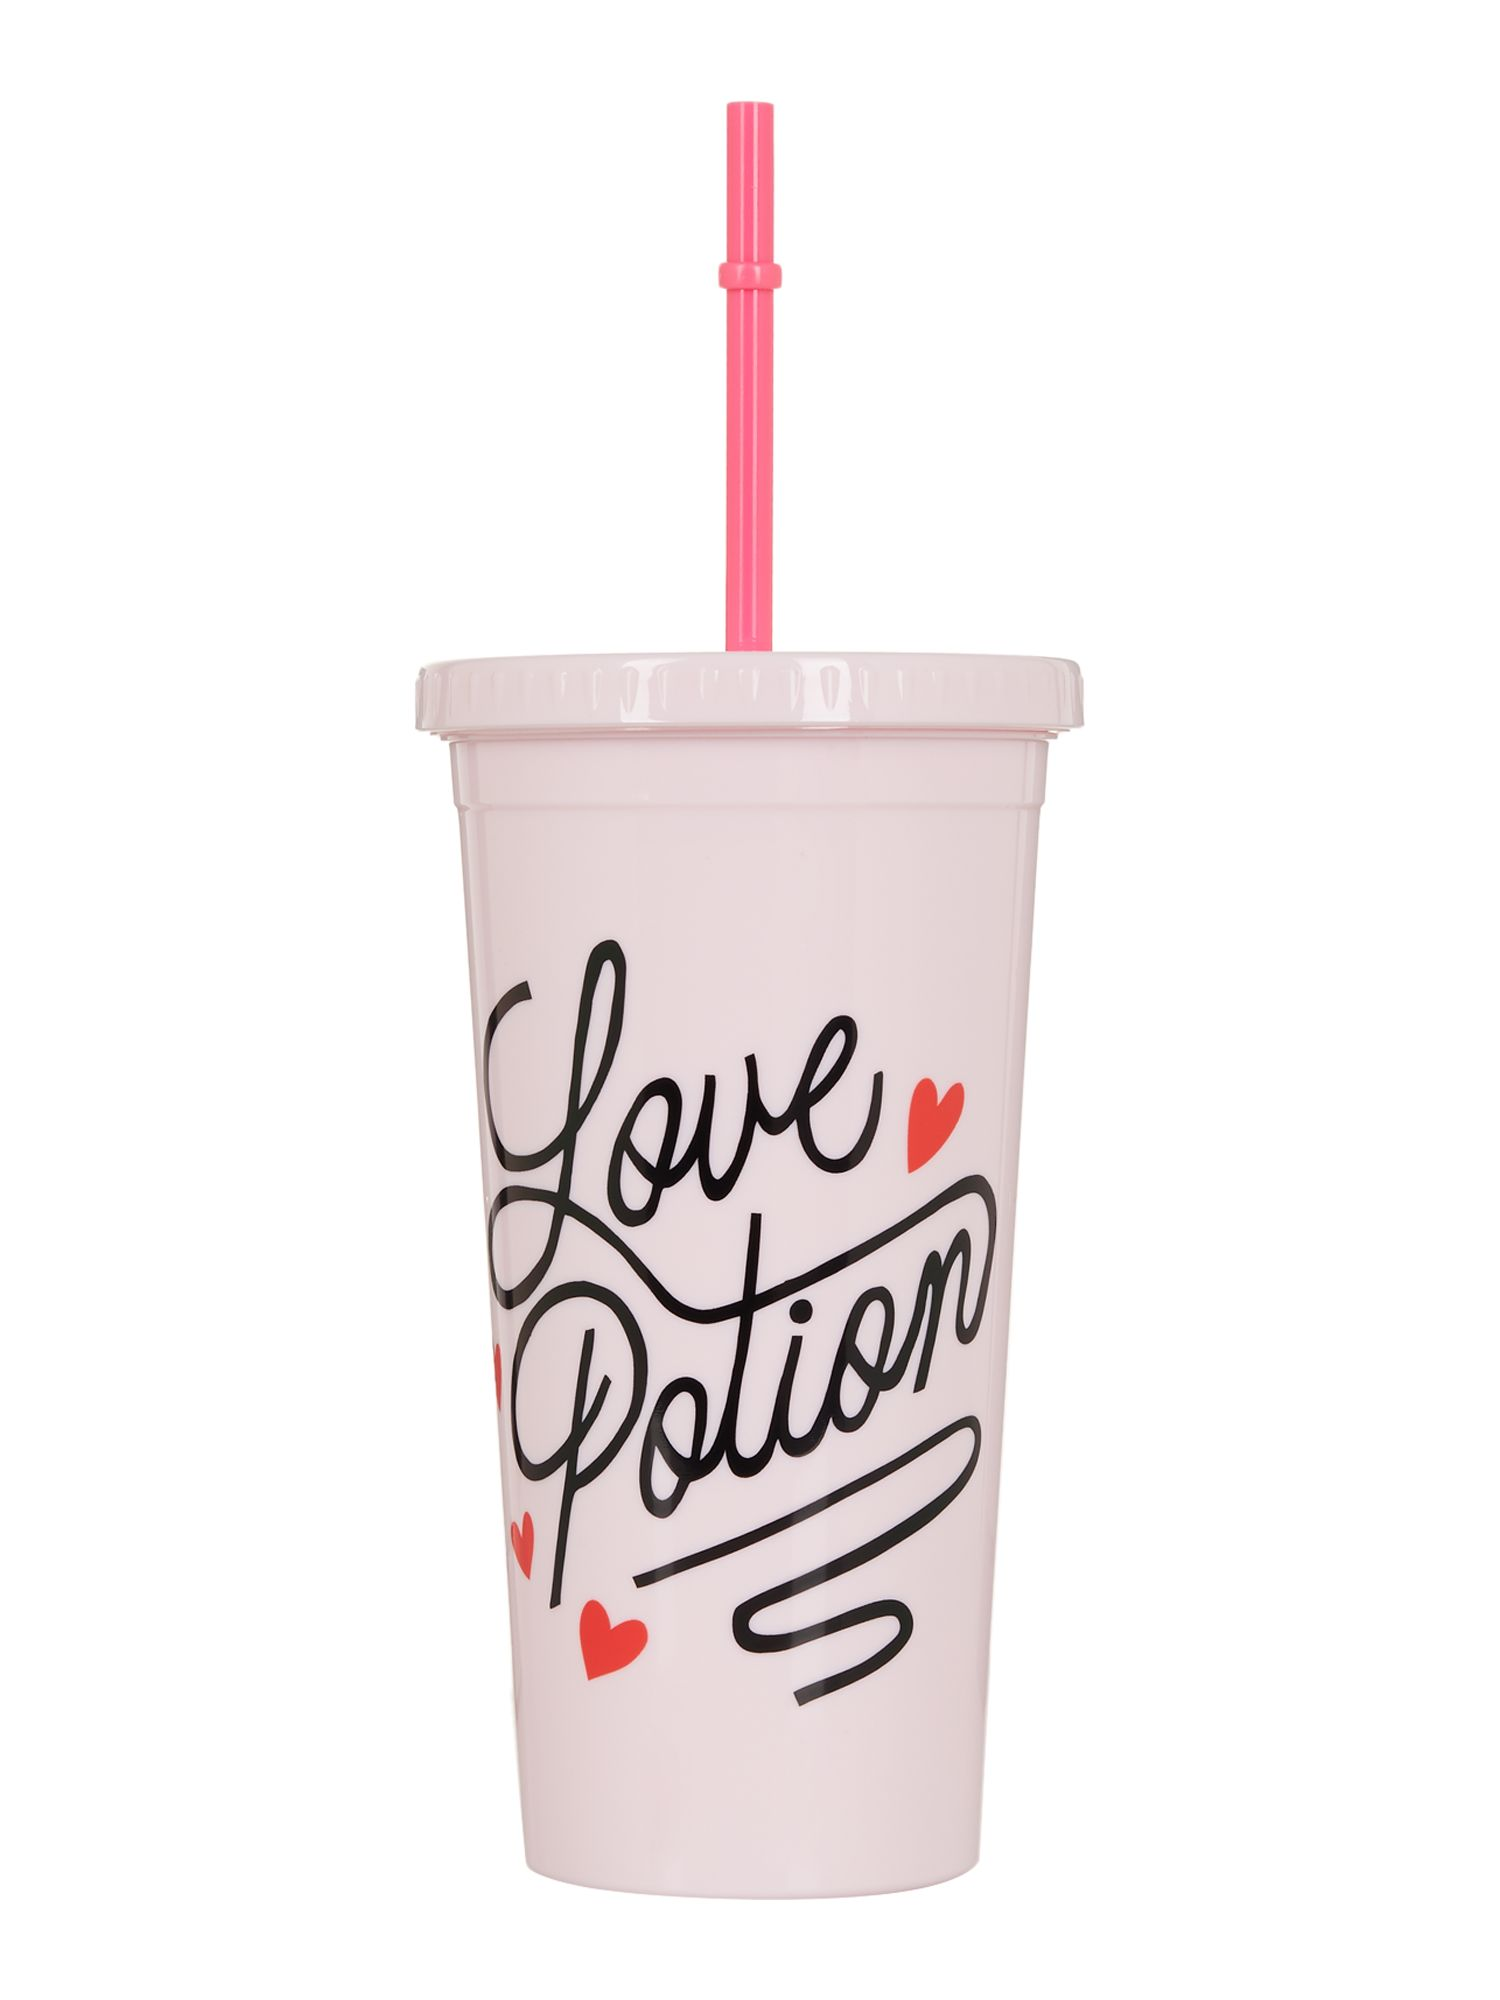 Image of Ban.do Love potion, sip sip tumbler with straw